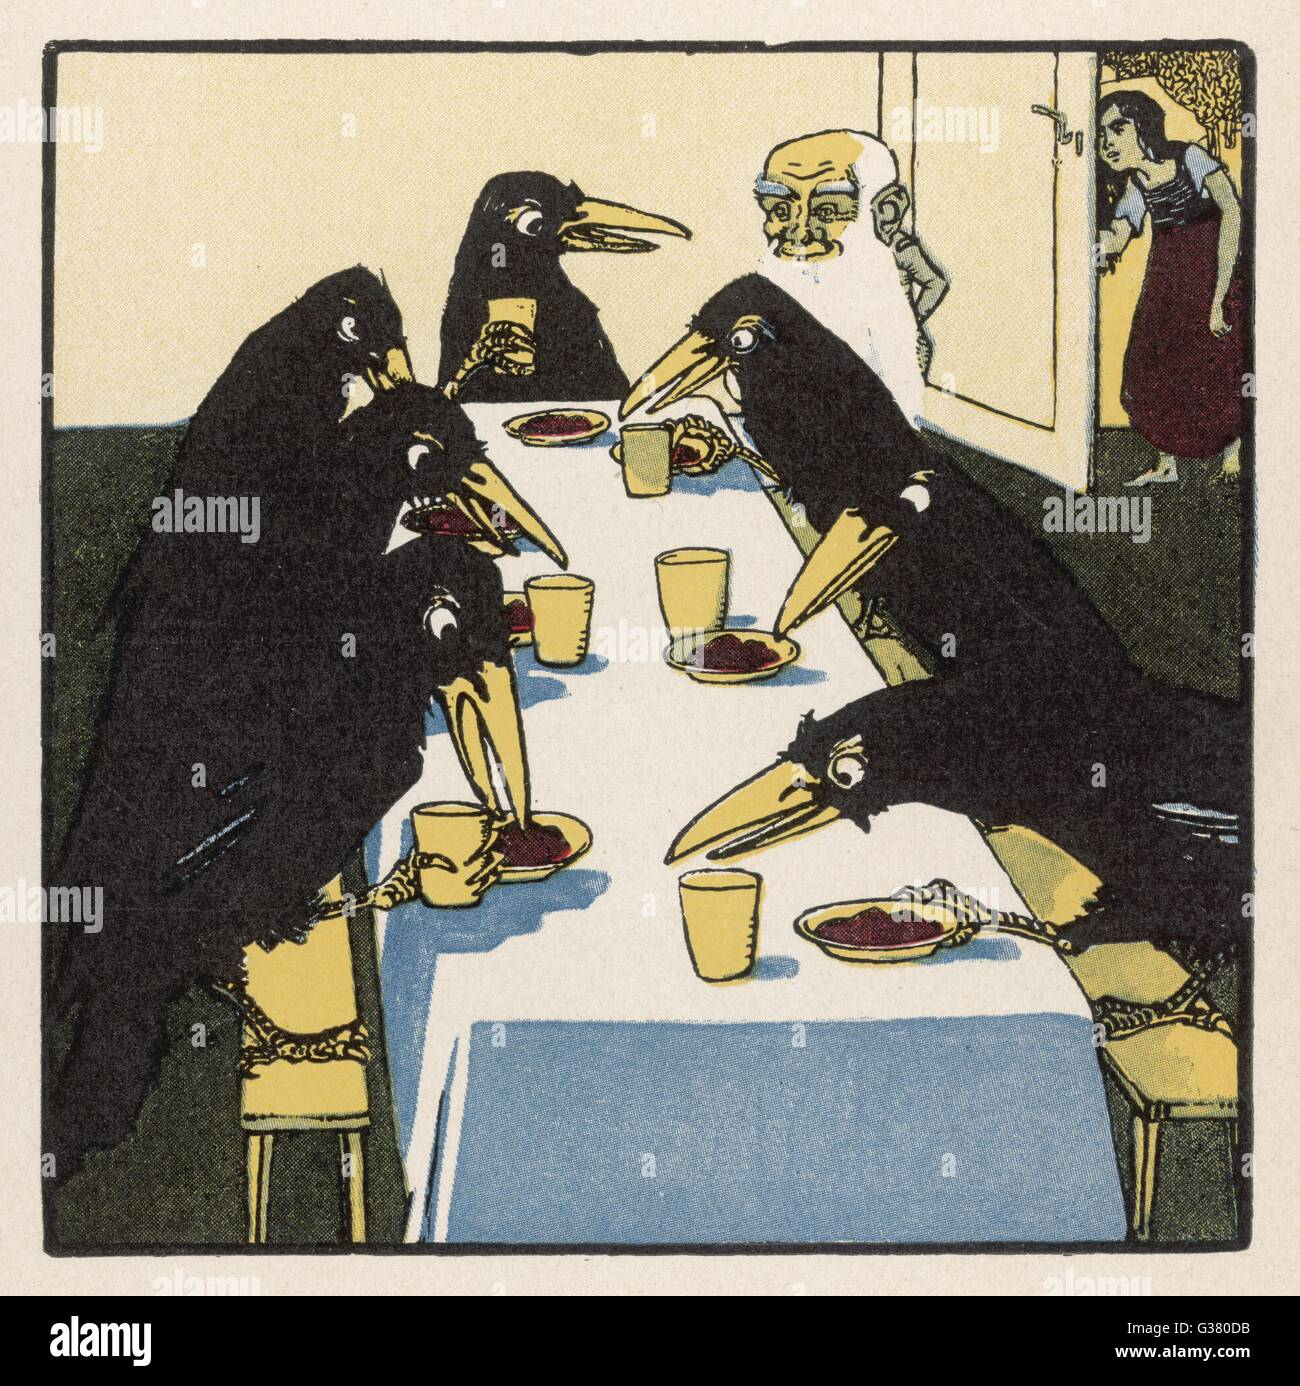 The seven ravens at the dinner  table. - Stock Image